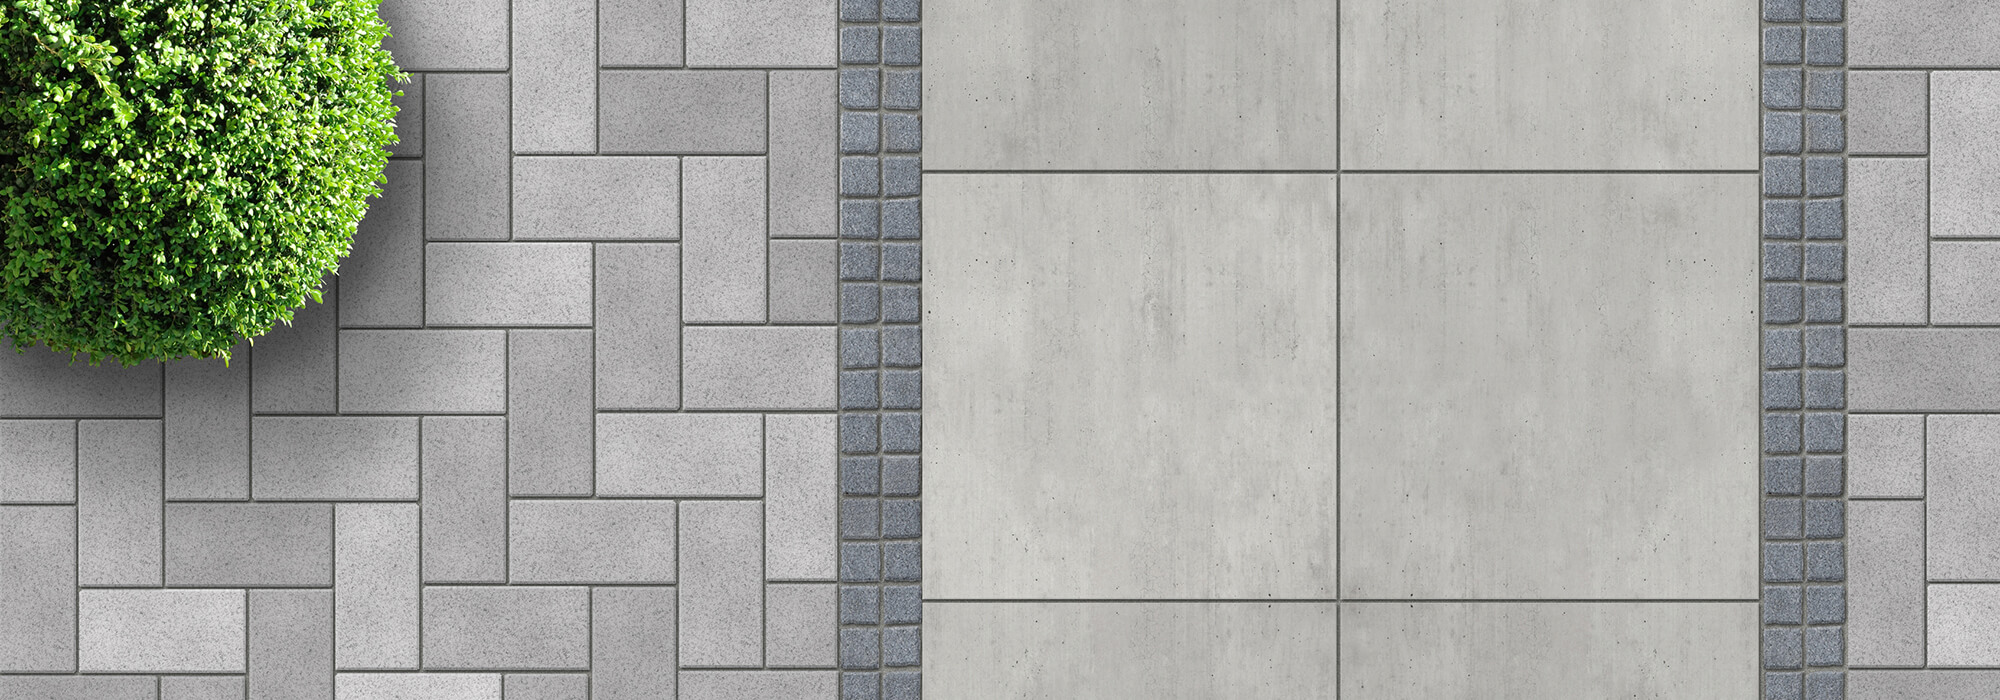 Paving, Kerbs and Channels